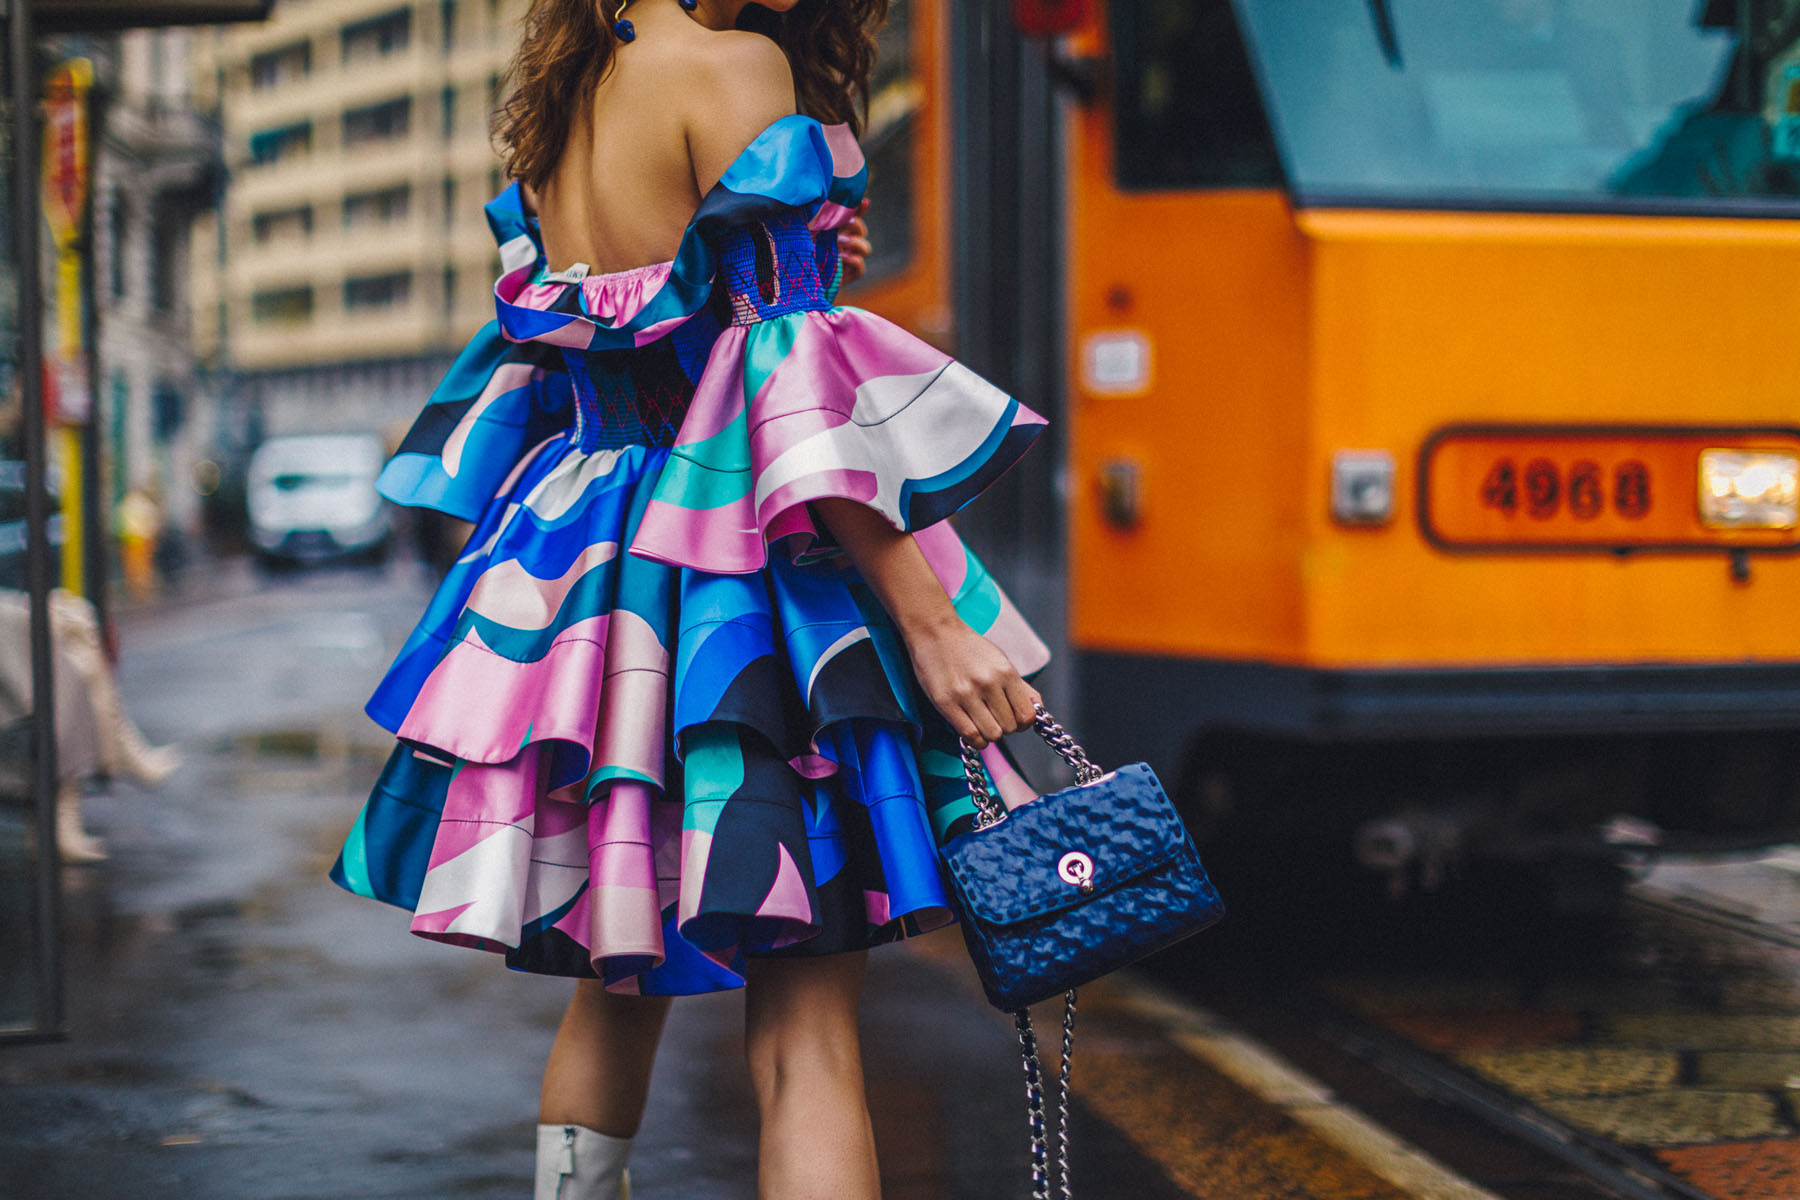 MFW Recap - Emilio Pucci Look, MFW Street Style, Emilio Pucci Dress, Colorful Ruffle dress, Fashion Week Street Style // Notjessfashion.com